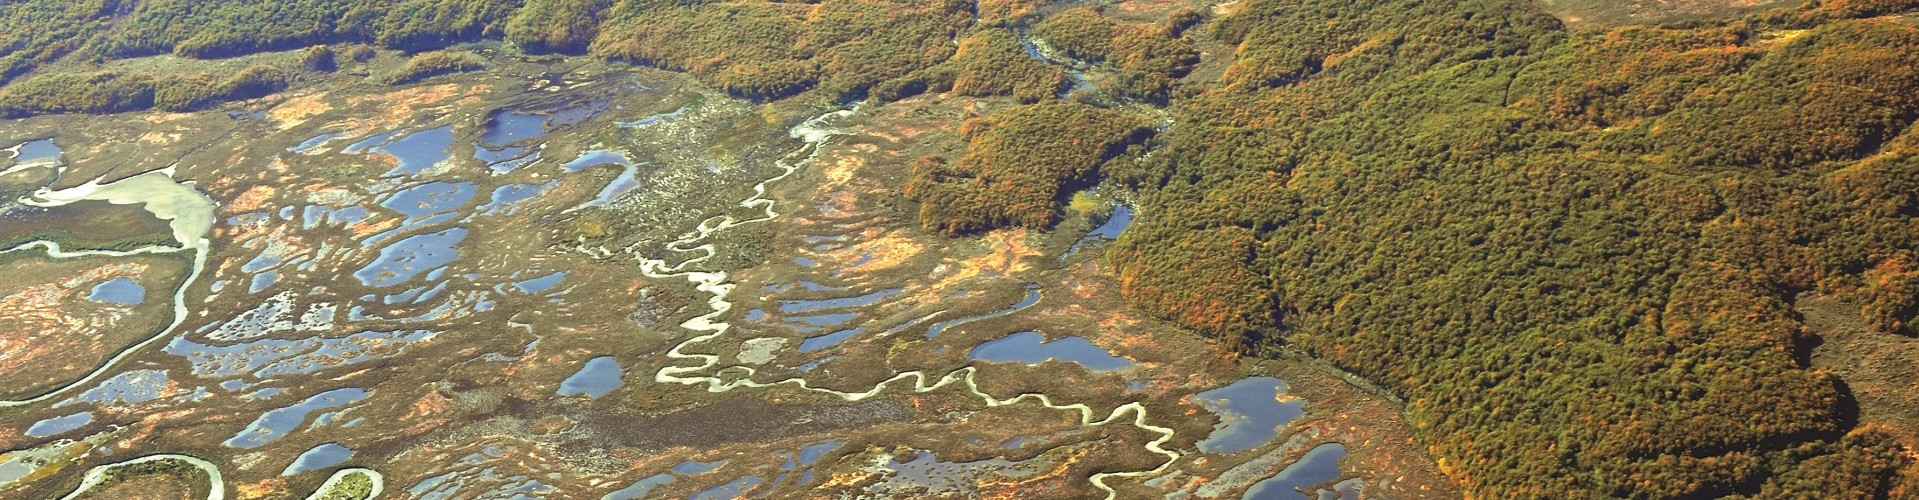 Contributing to the conservation and sustainable use of Tierra del Fuego peatlands cropped